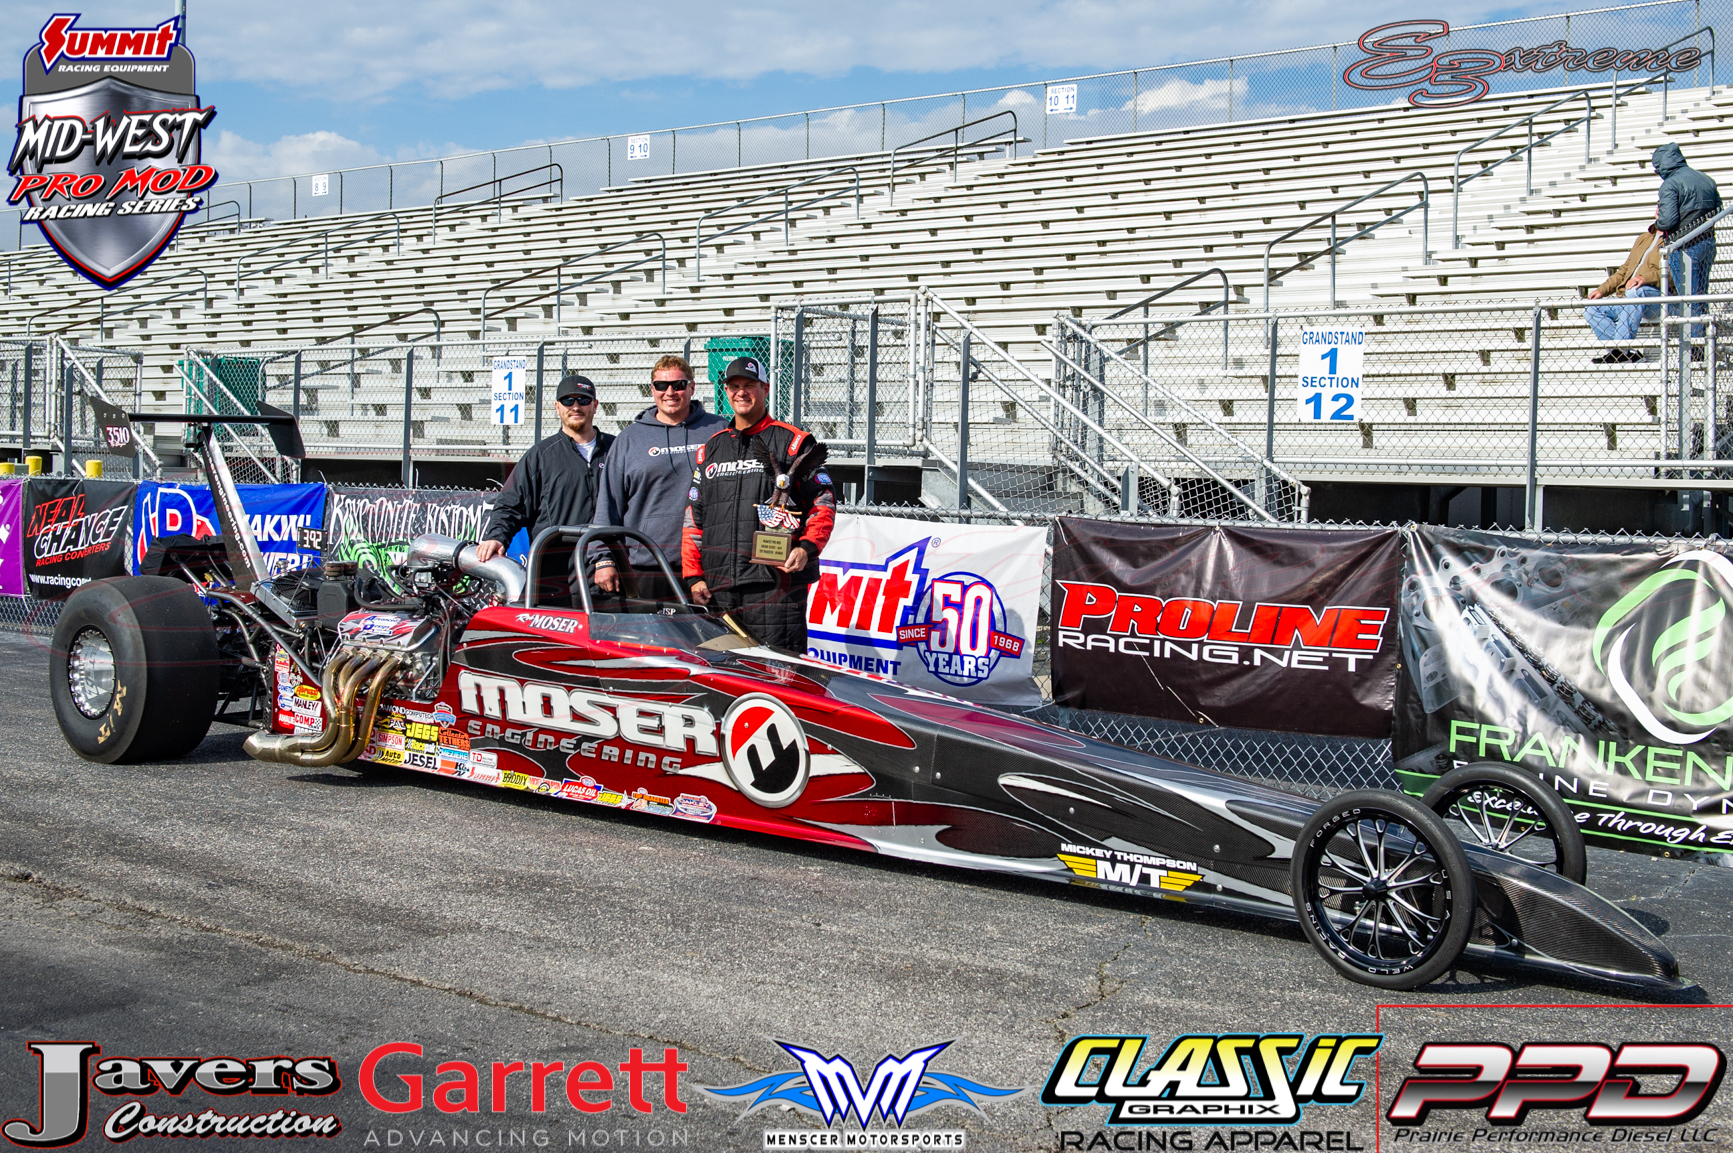 Race Star Wheels Top Dragster Winner Rob Moser